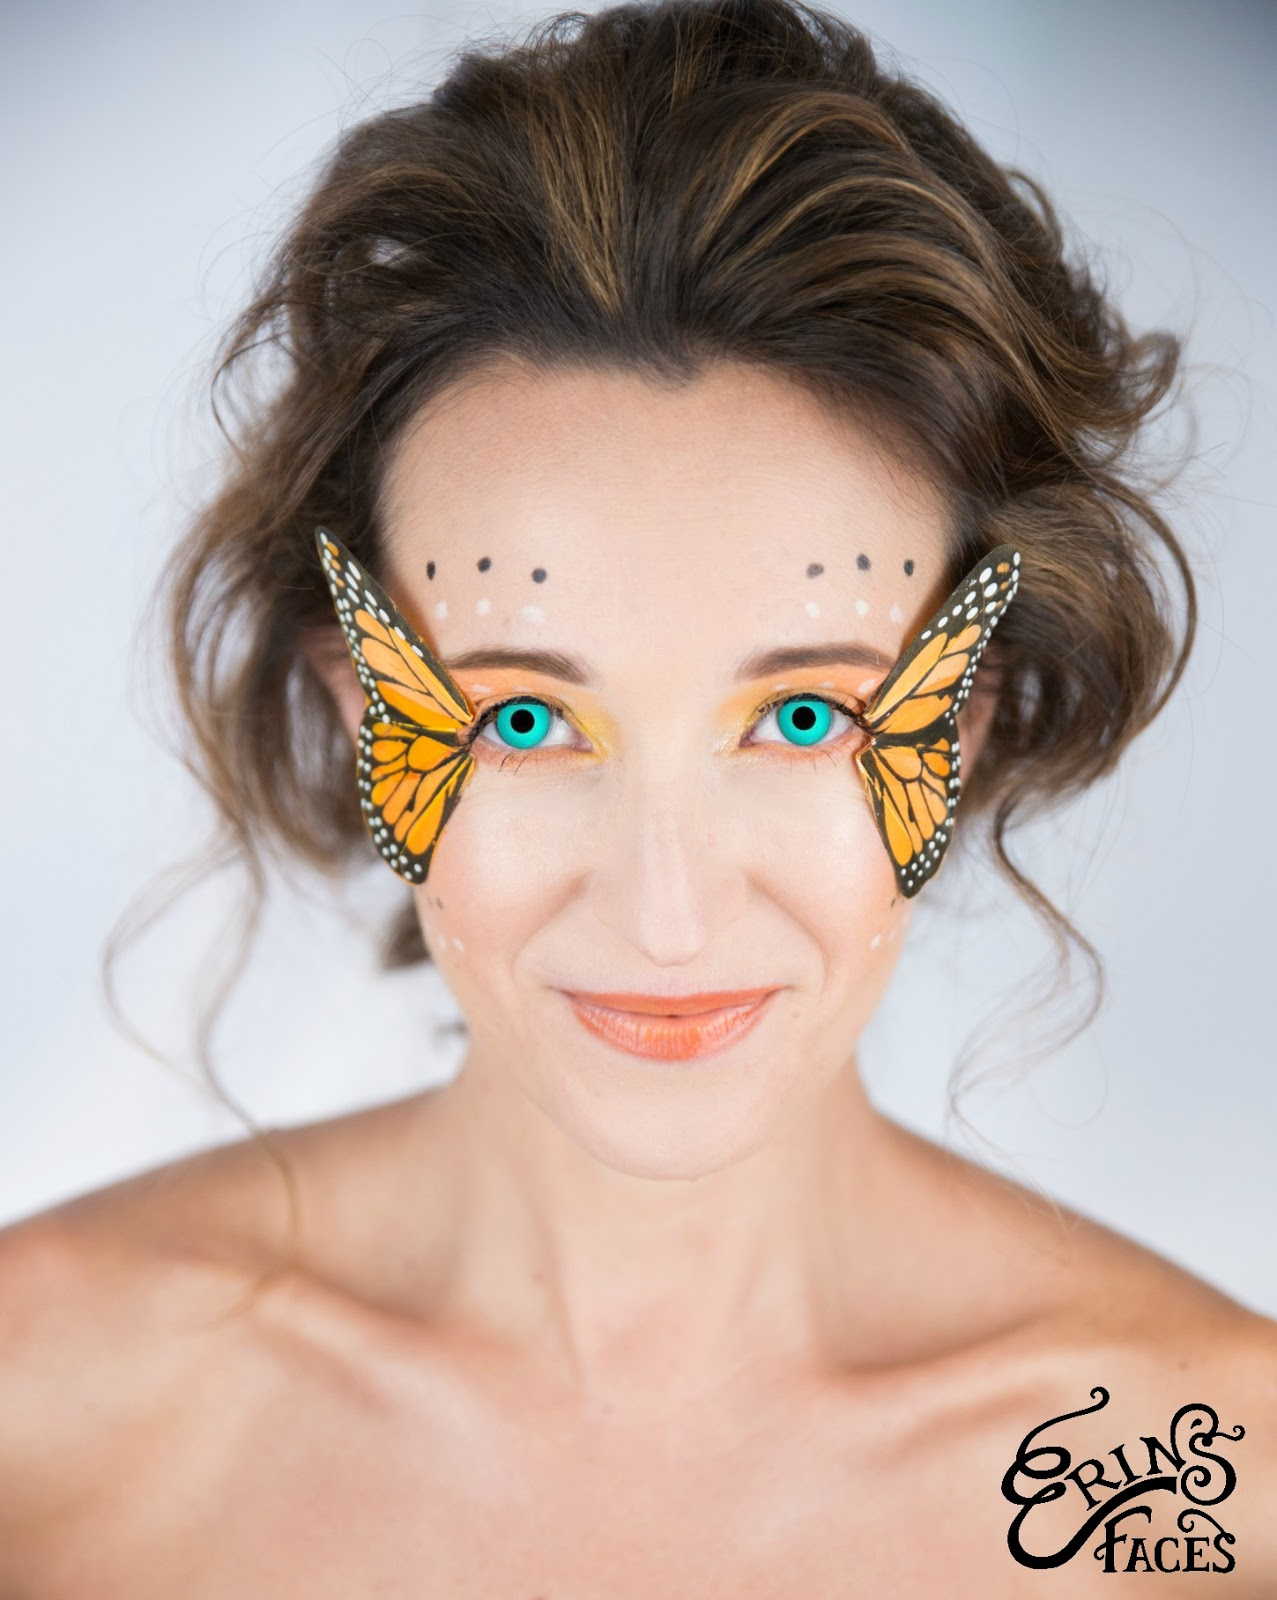 erin's faces: Butterfly Fairy Halloween Makeup Tutorial